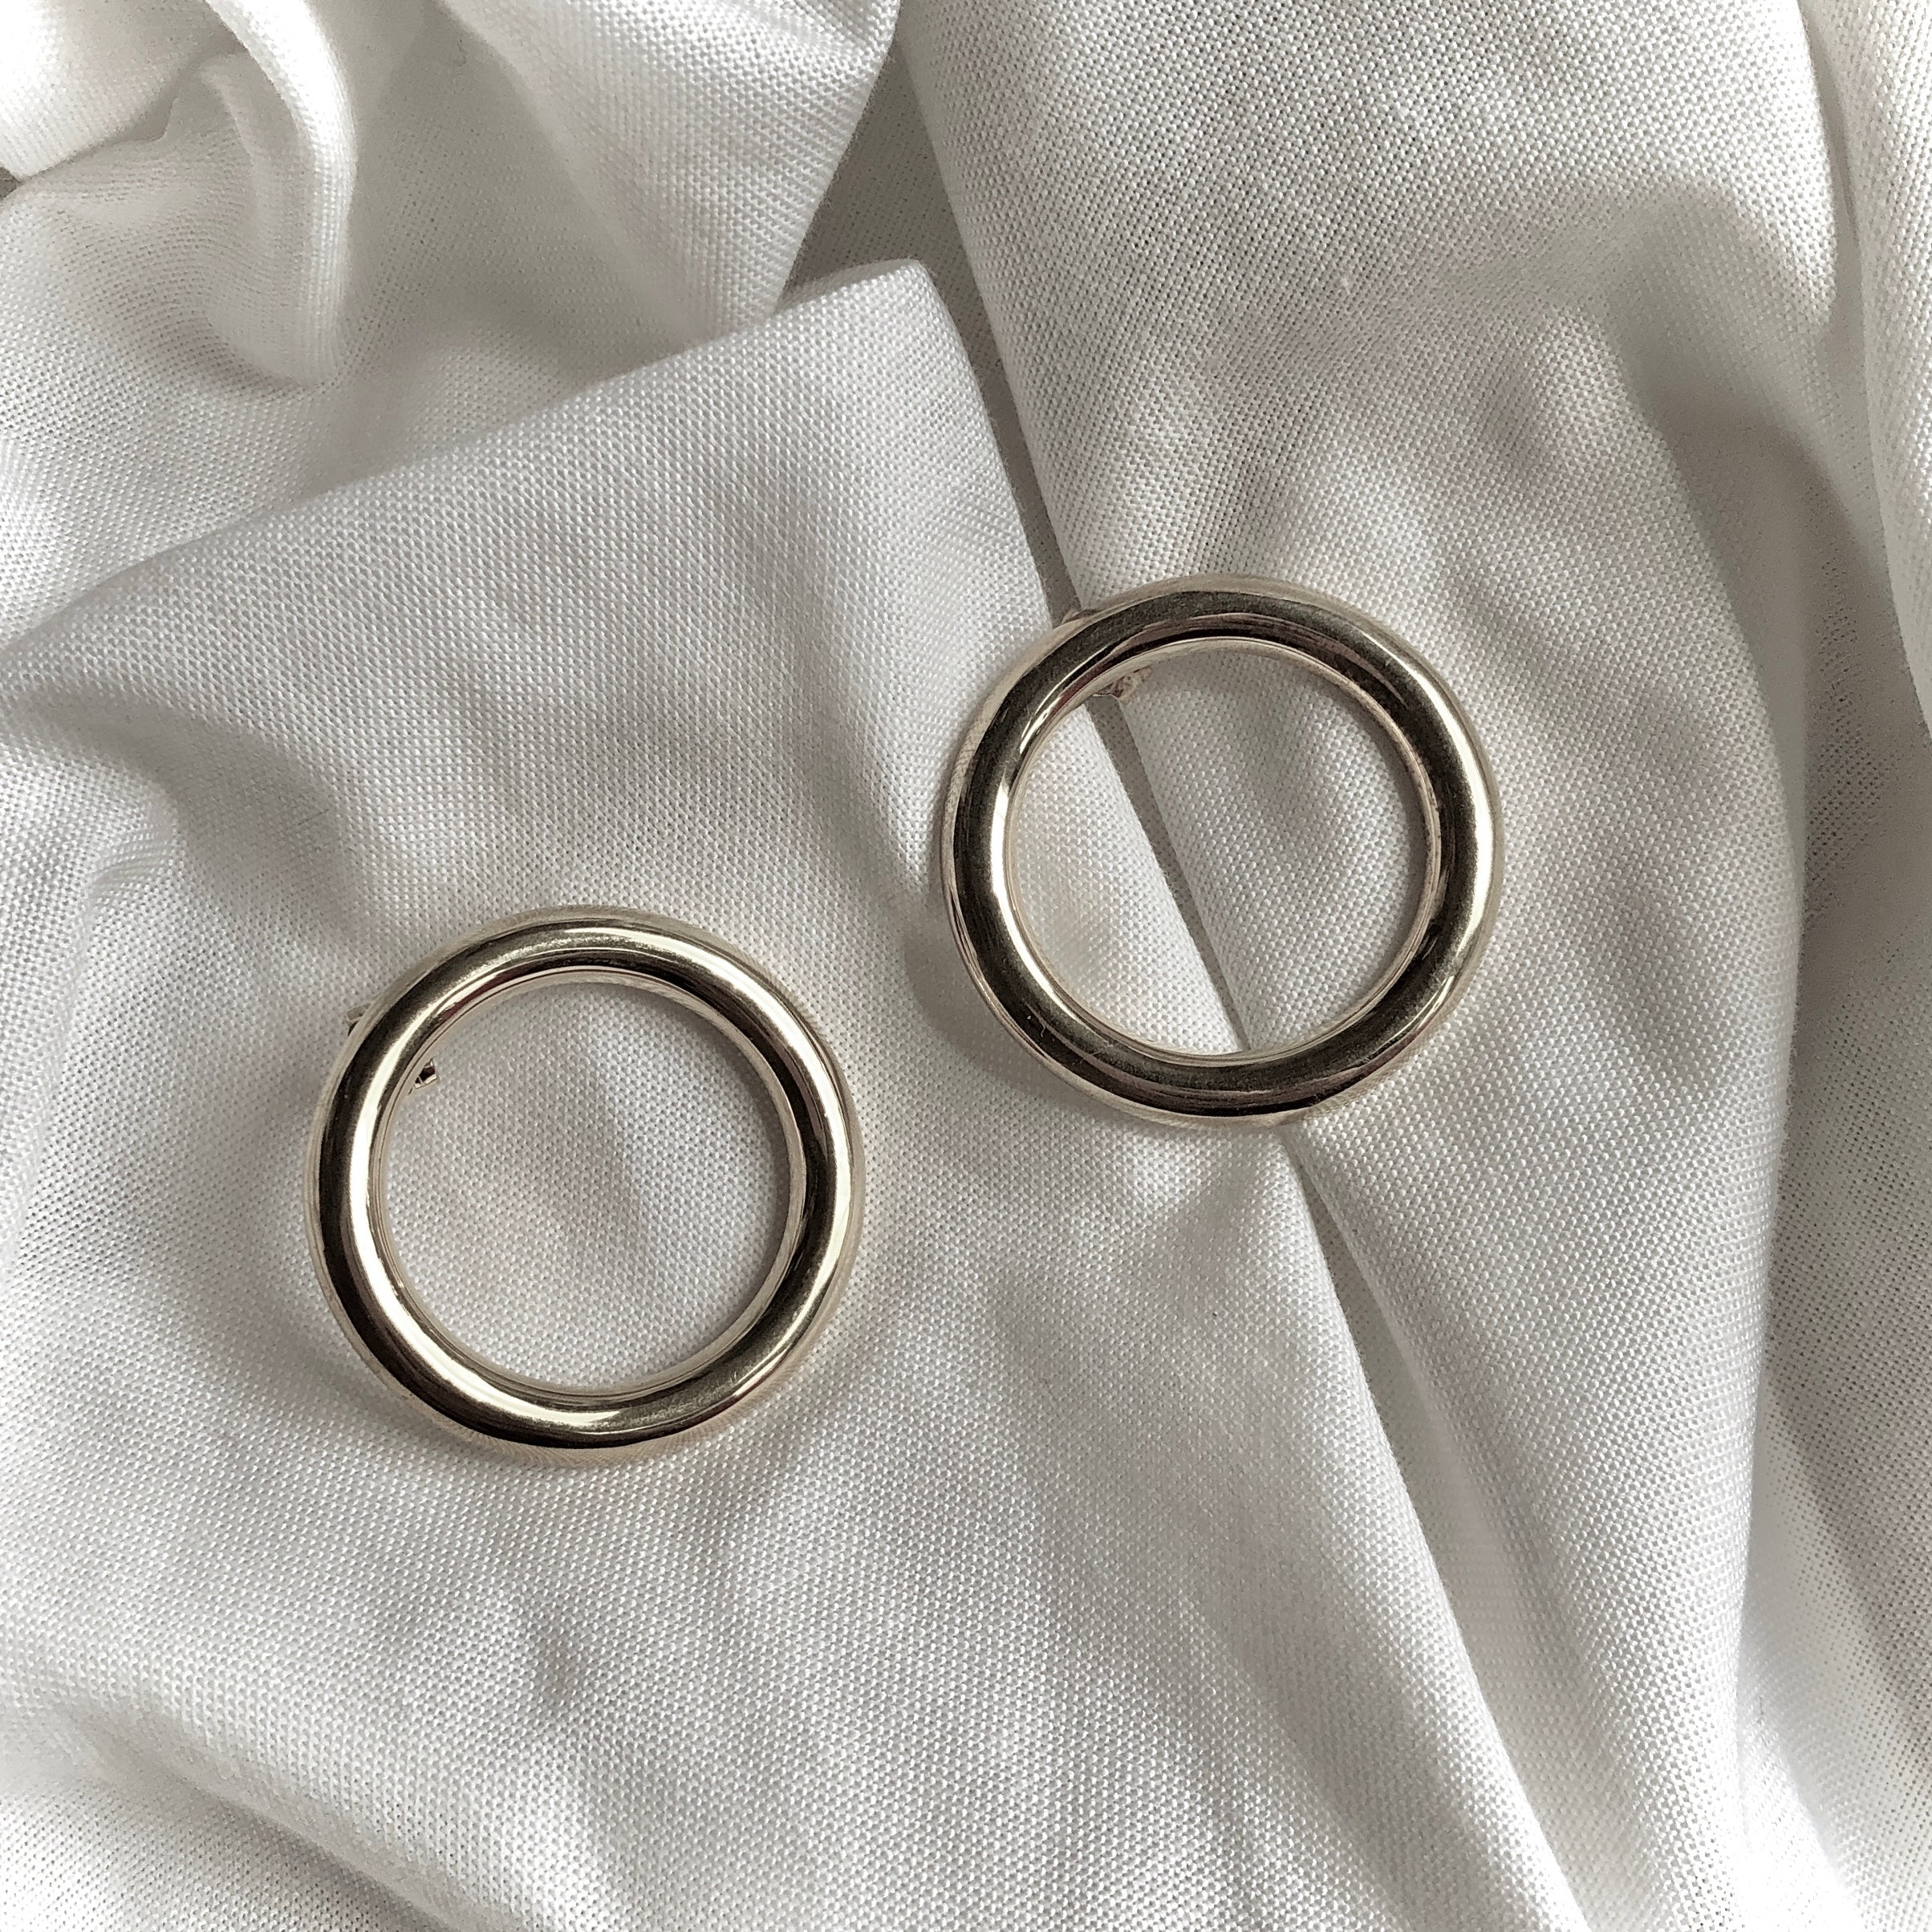 Flat Hoop Earrings by Veronique 925 Silver